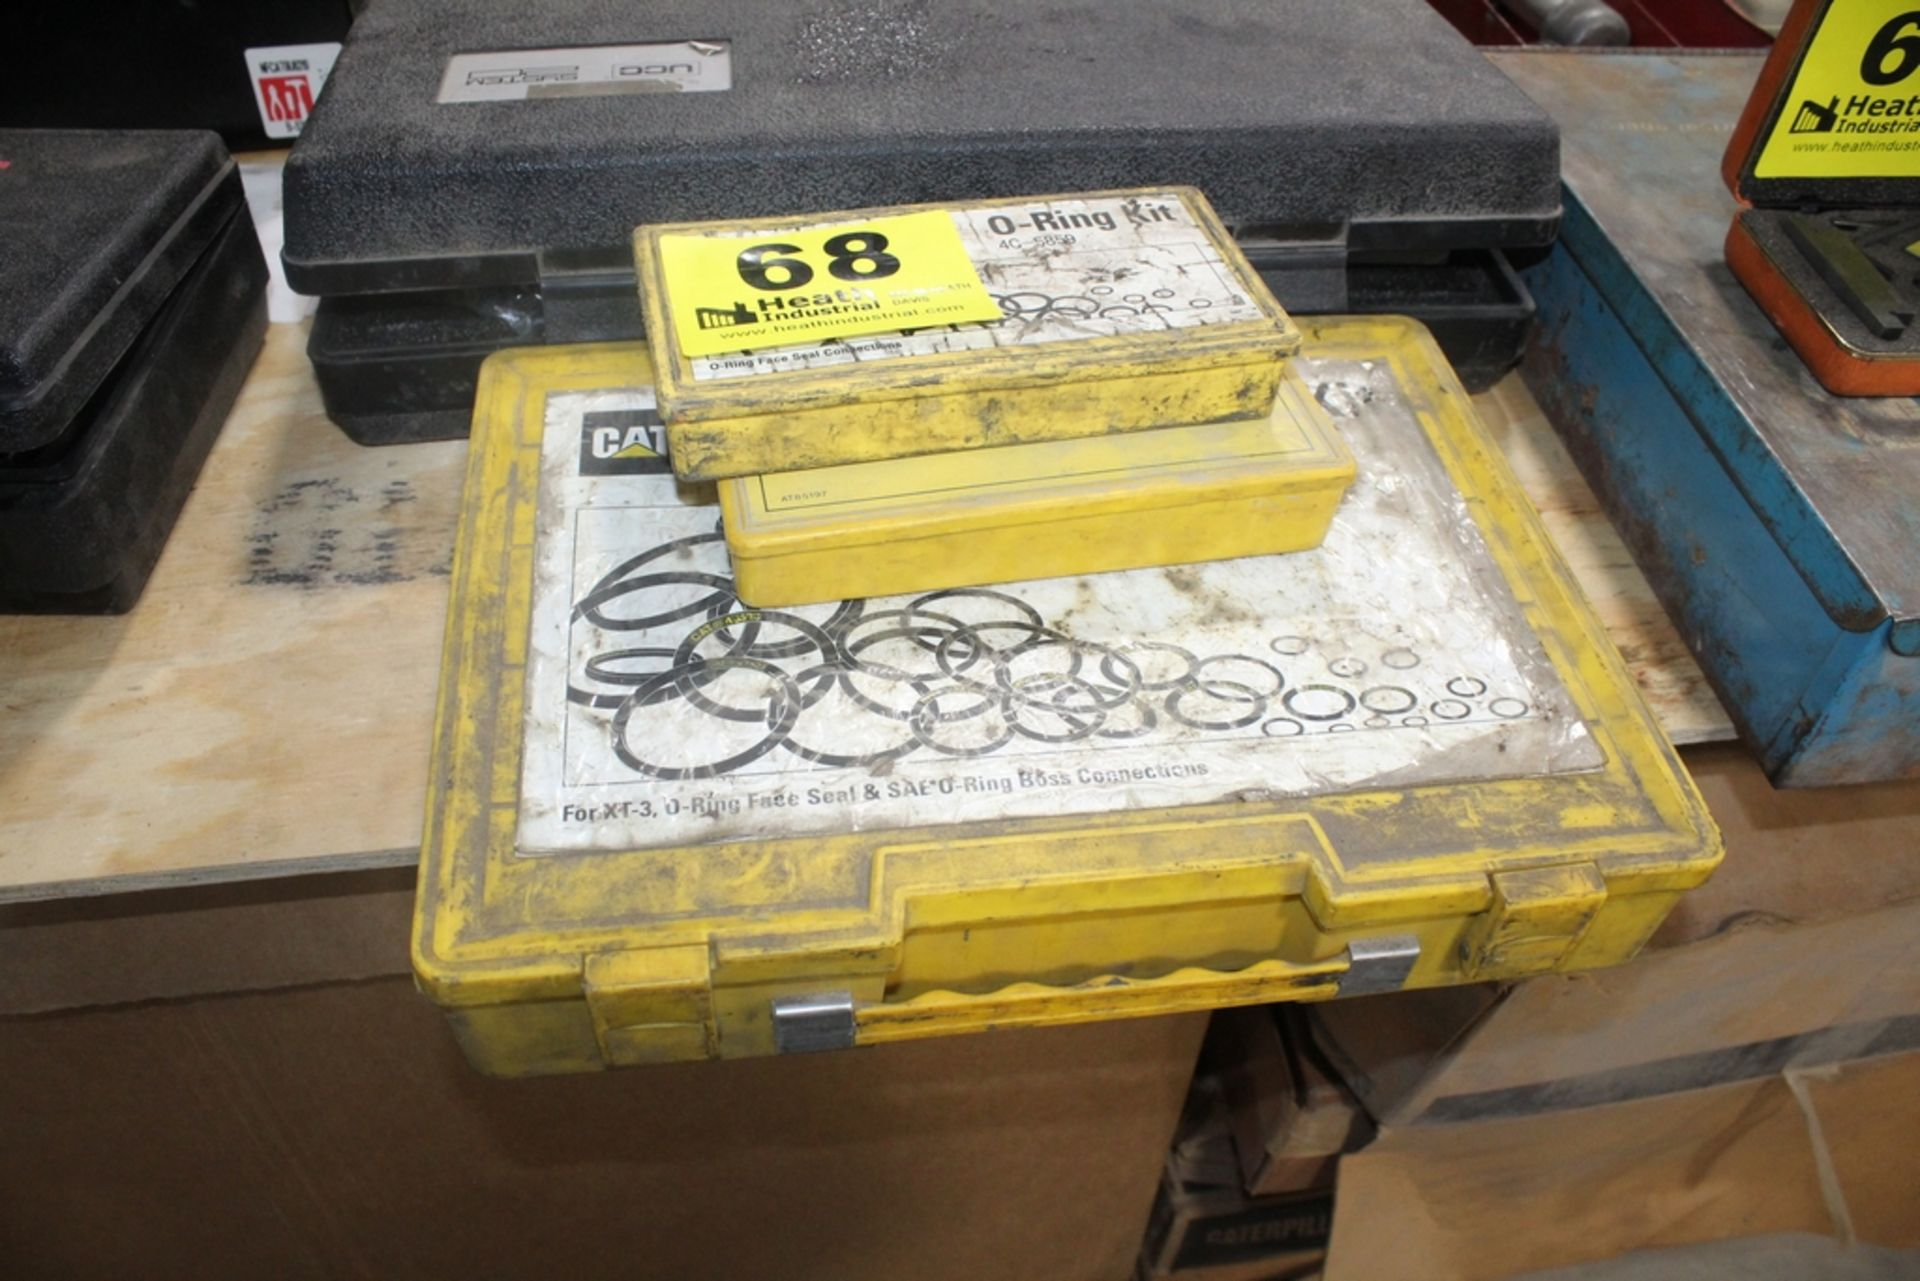 (3) CASES WITH 0-RING KITS